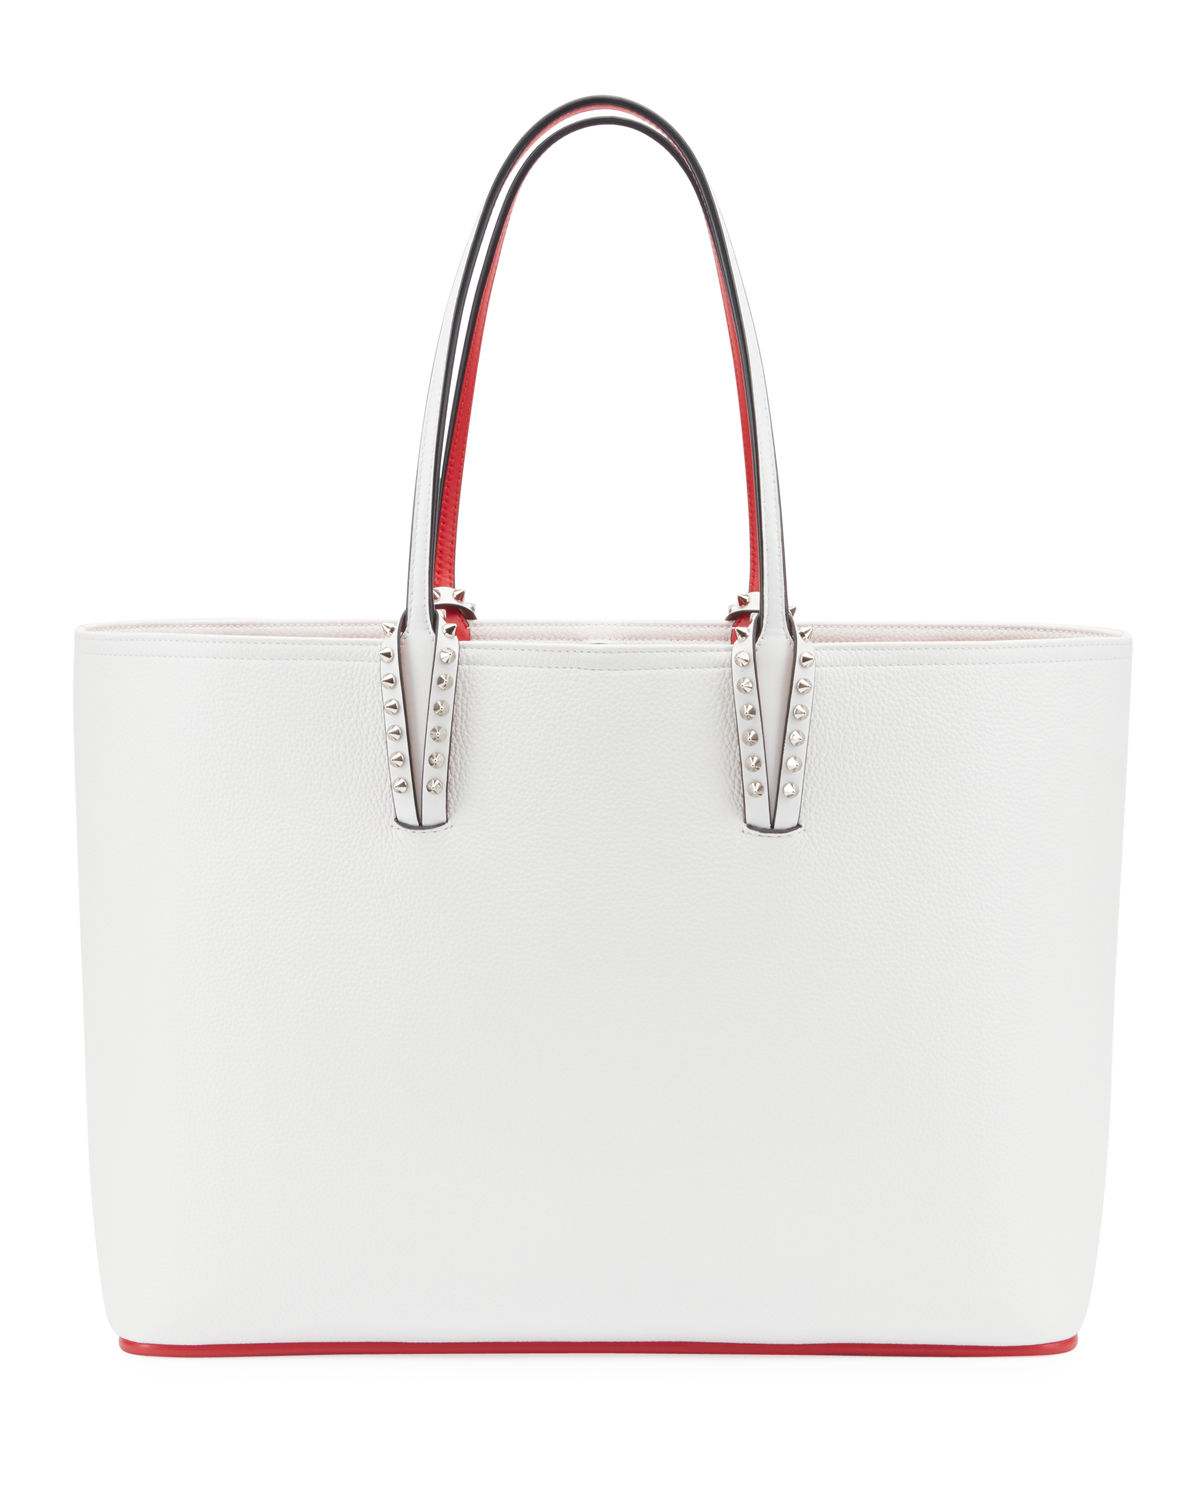 2deea35b9d6f Christian Louboutin Cabata East-West Leather Tote Bag